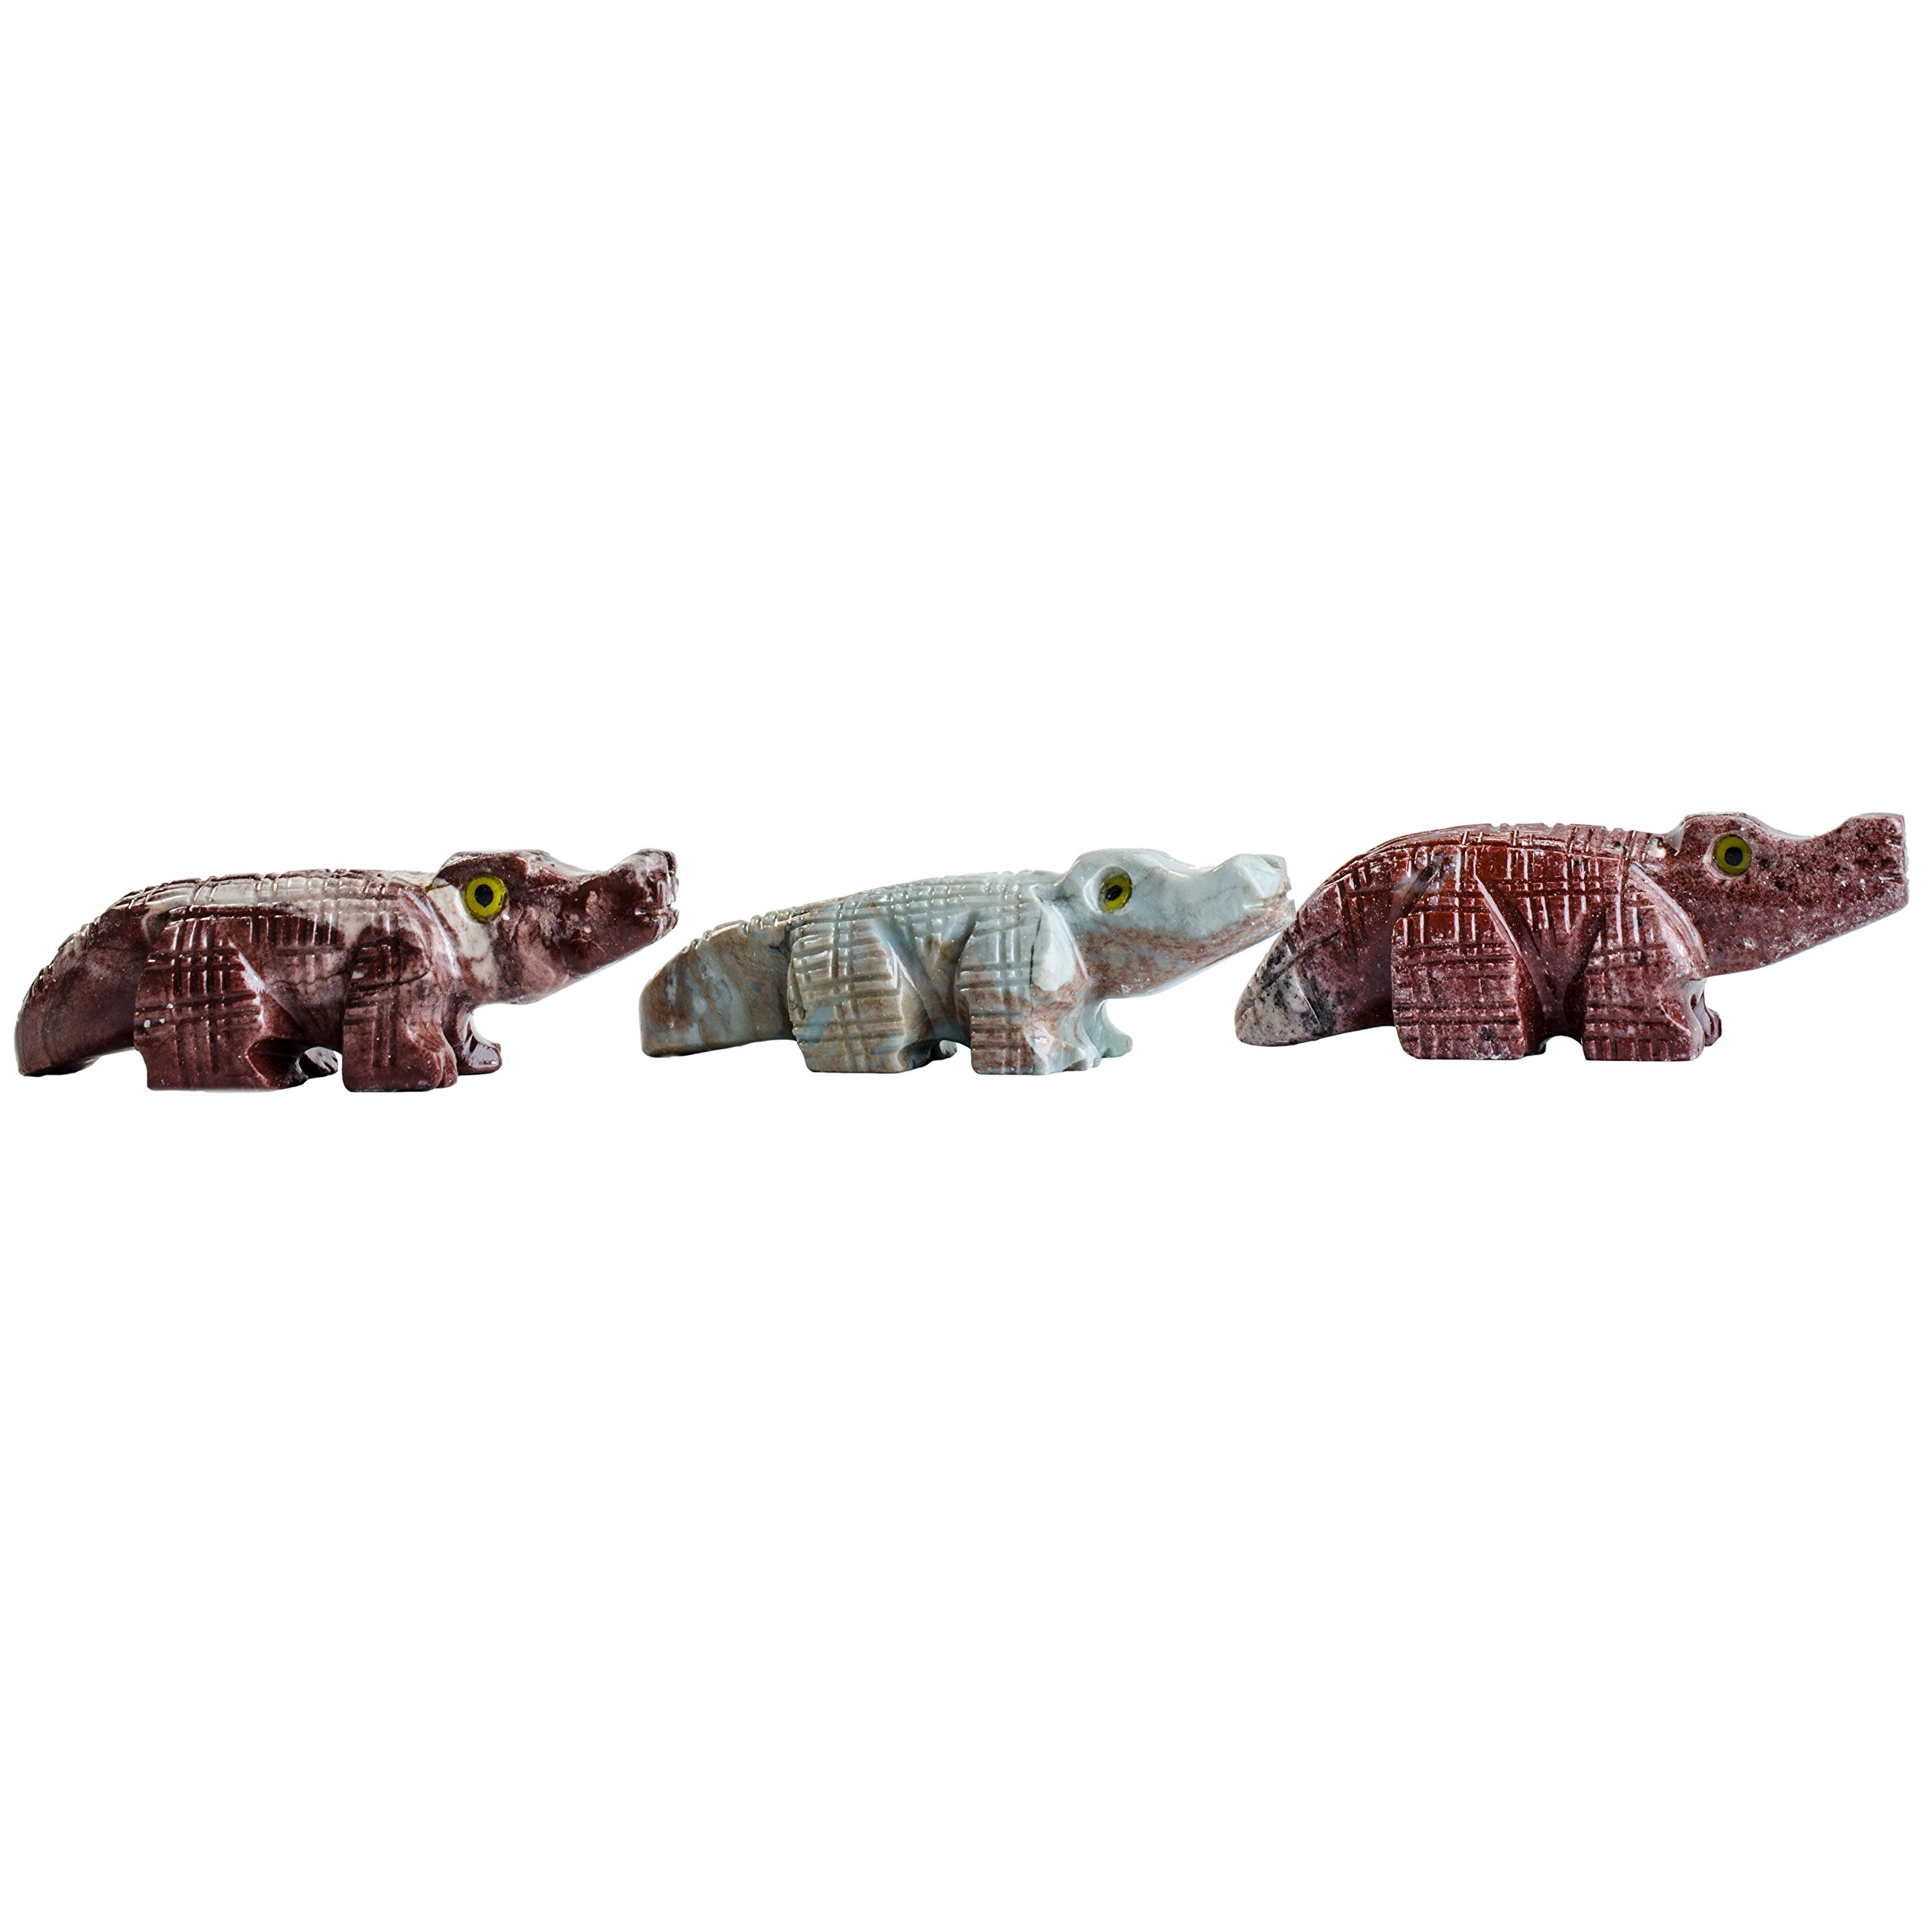 Digging Dolls : 30 pcs Artisan Alligator Collectable Animal Figurine - Party Favors, Stocking Stuffers, Gifts, Collecting and More!